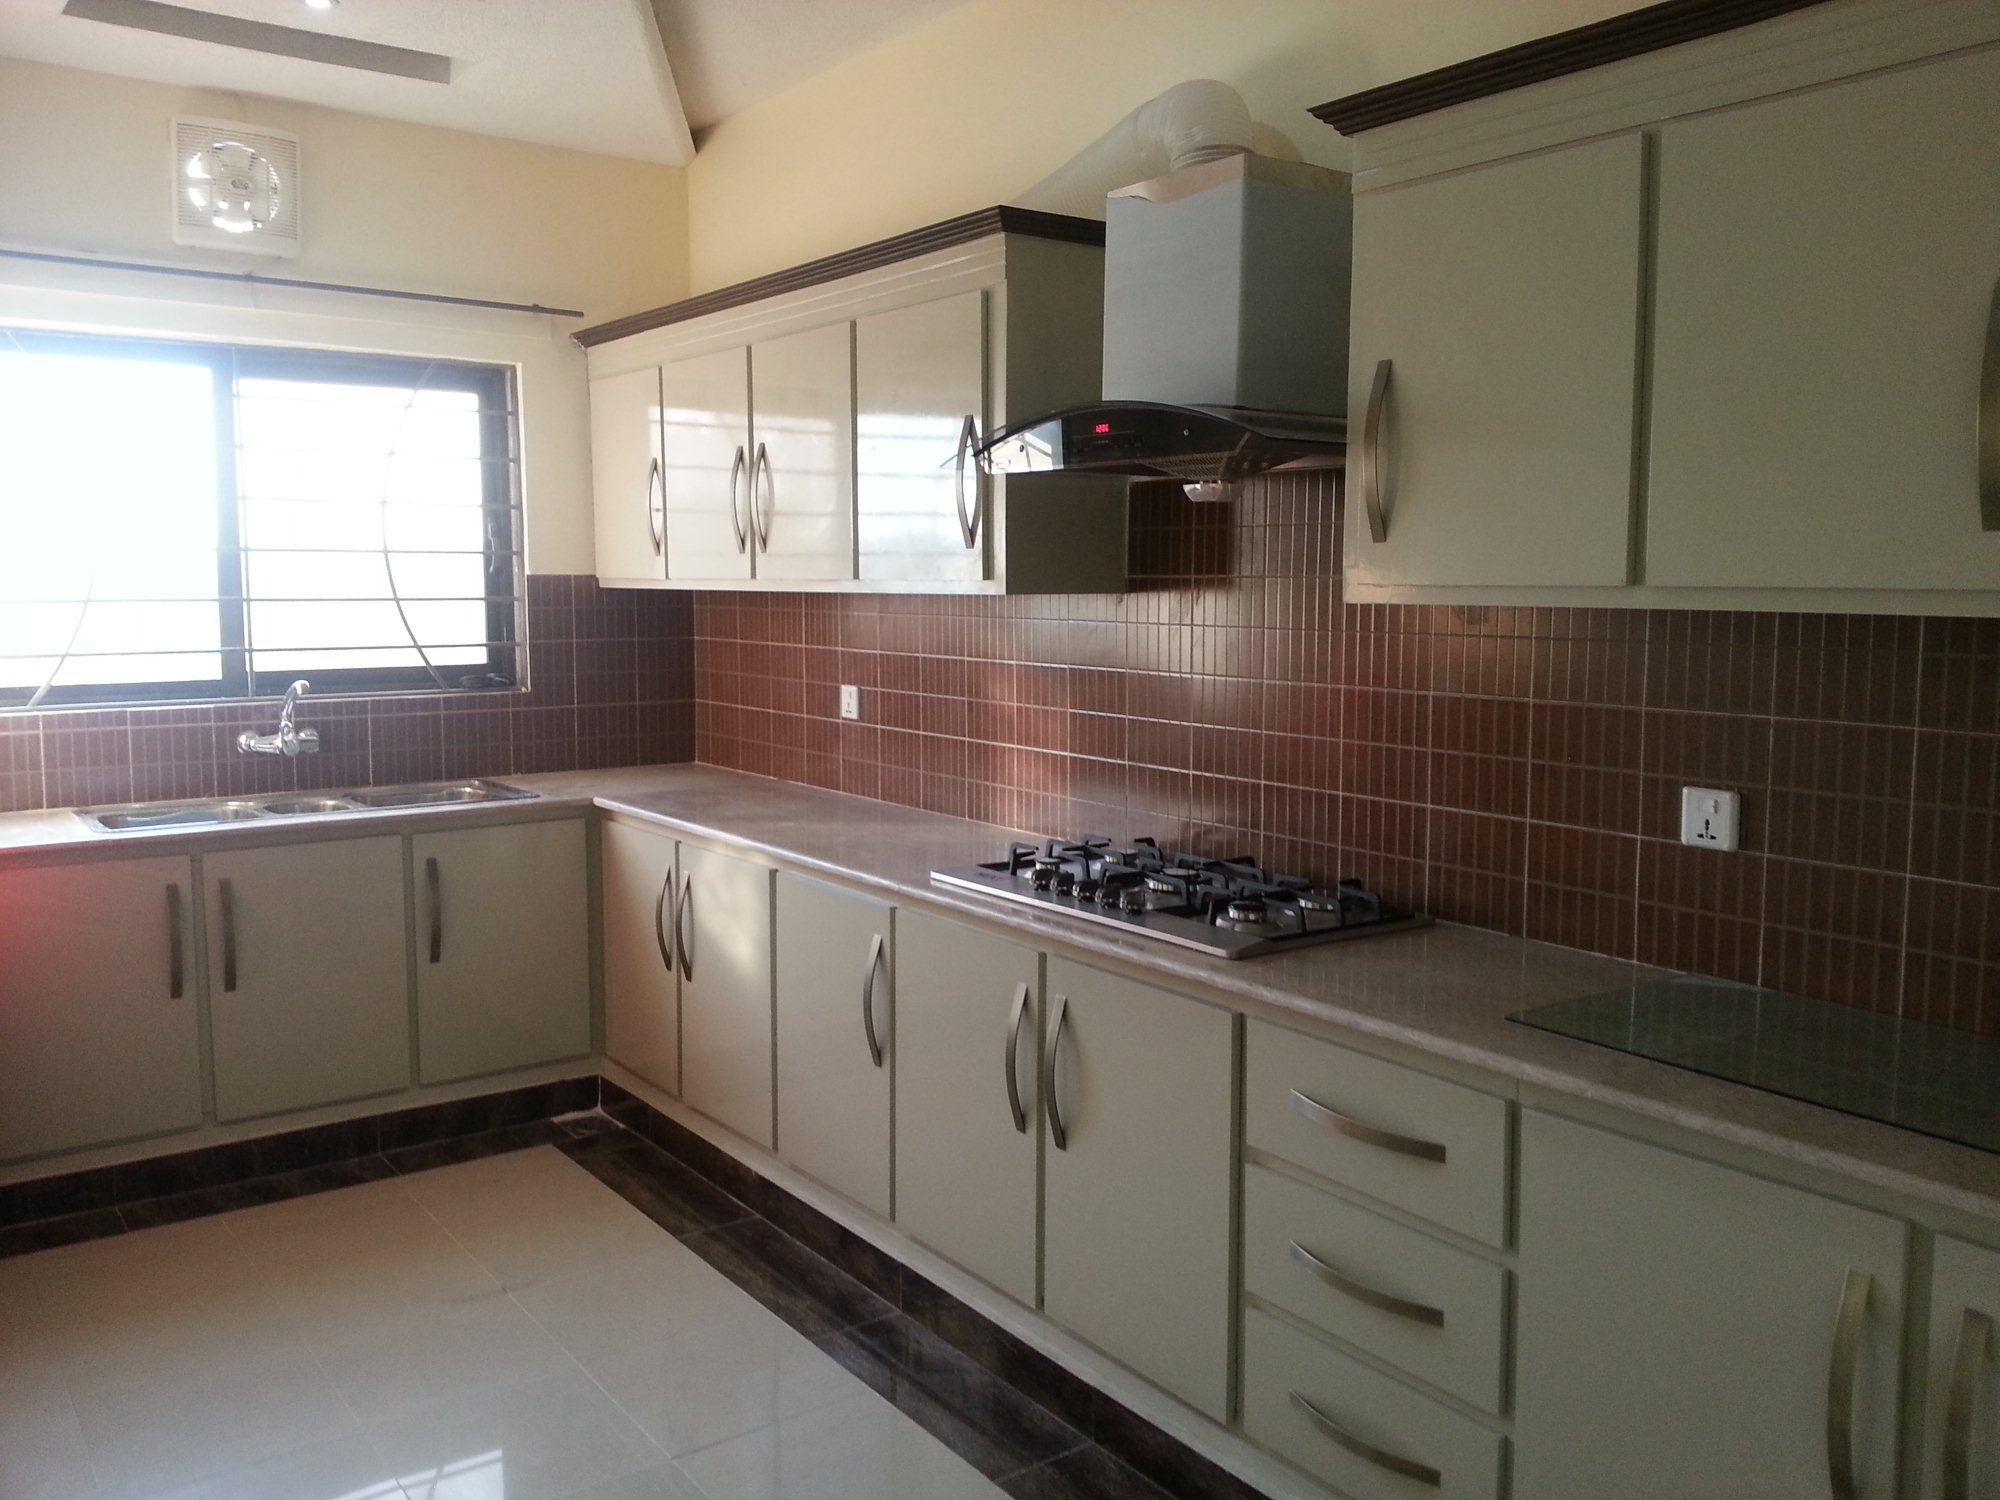 Furnished house in bahria town phase 3 islamabad for sale for Kitchen design in lahore pakistan